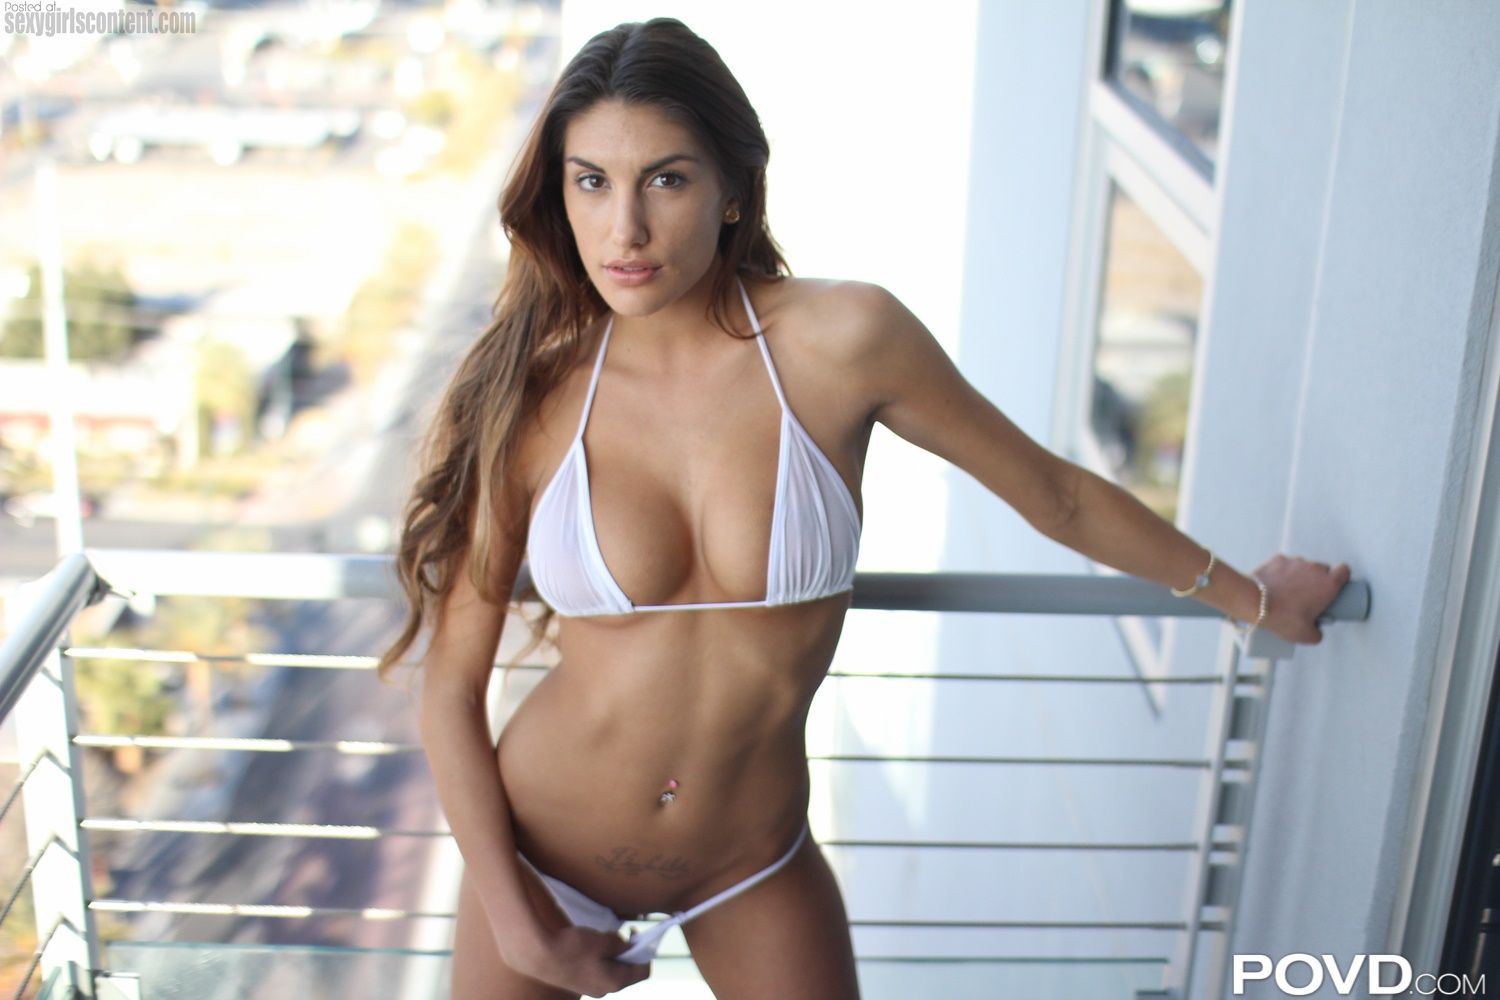 28 beautiful hot august ames bikini big boobs showing pussy dgaa60